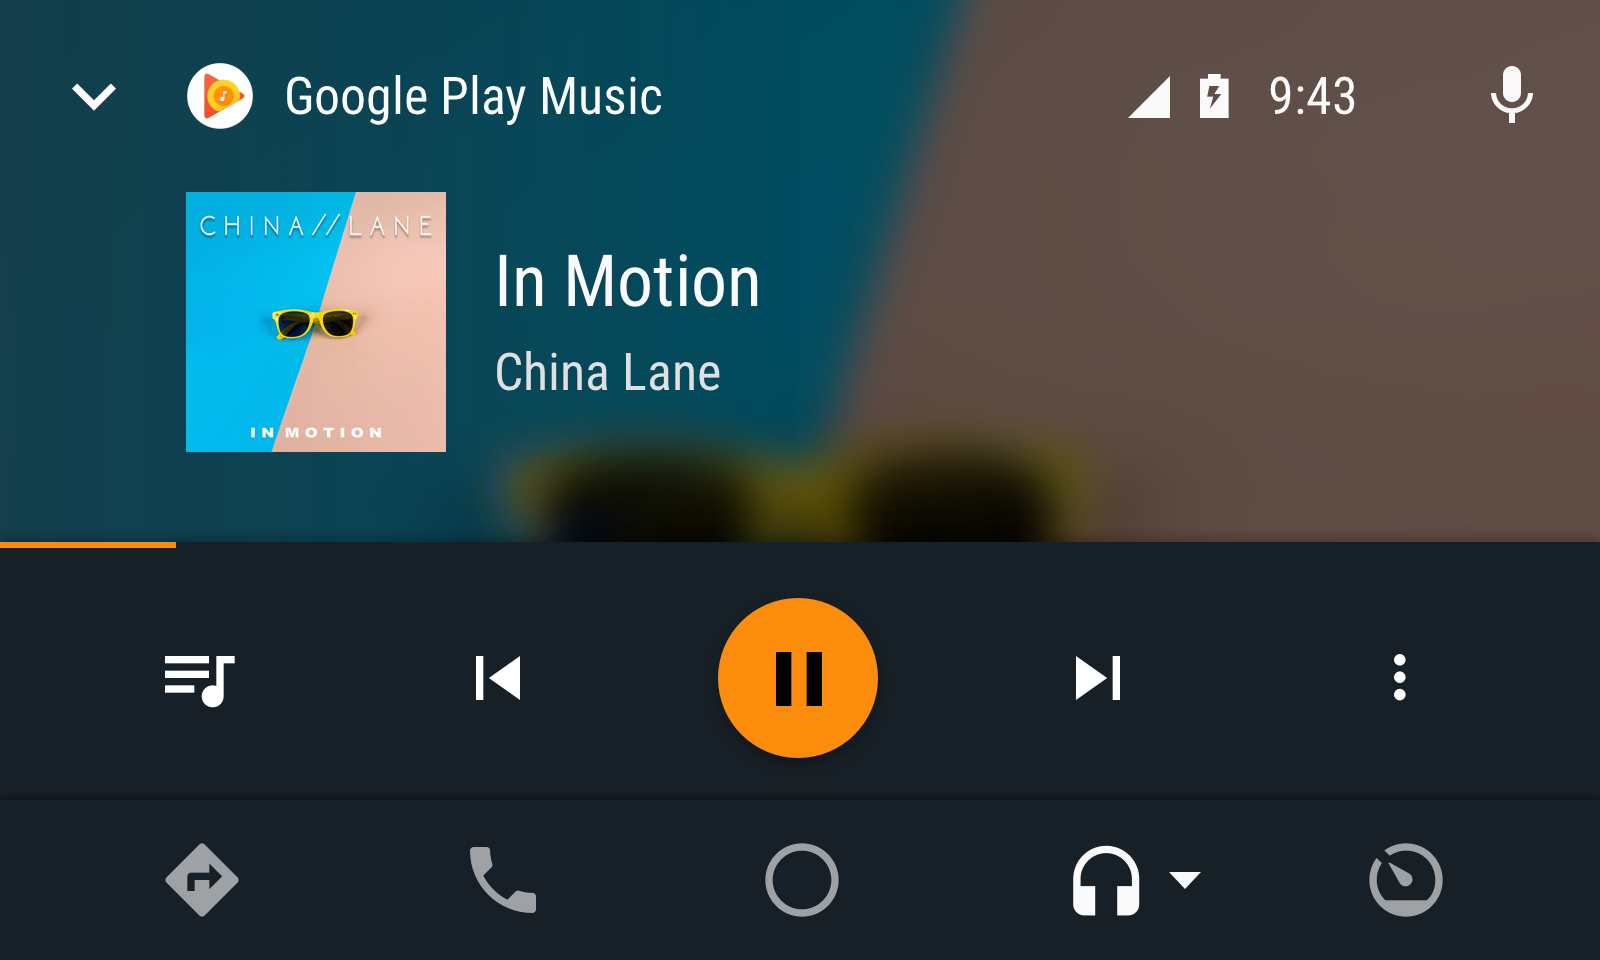 Customized audio app UI